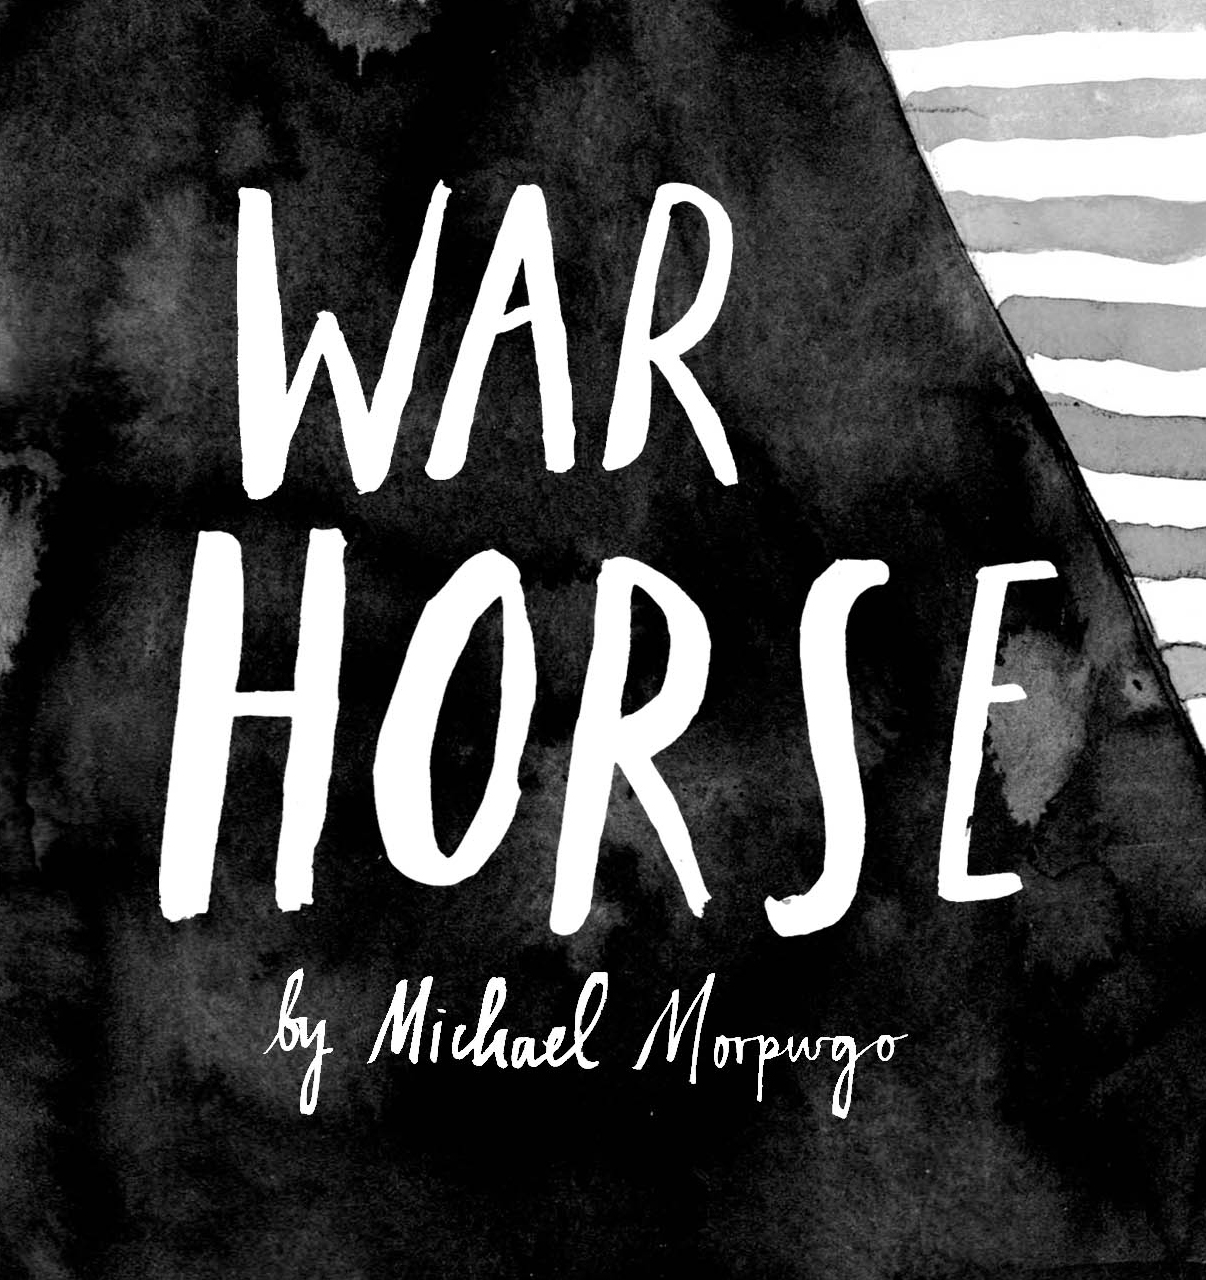 War Horse Cover Typeface